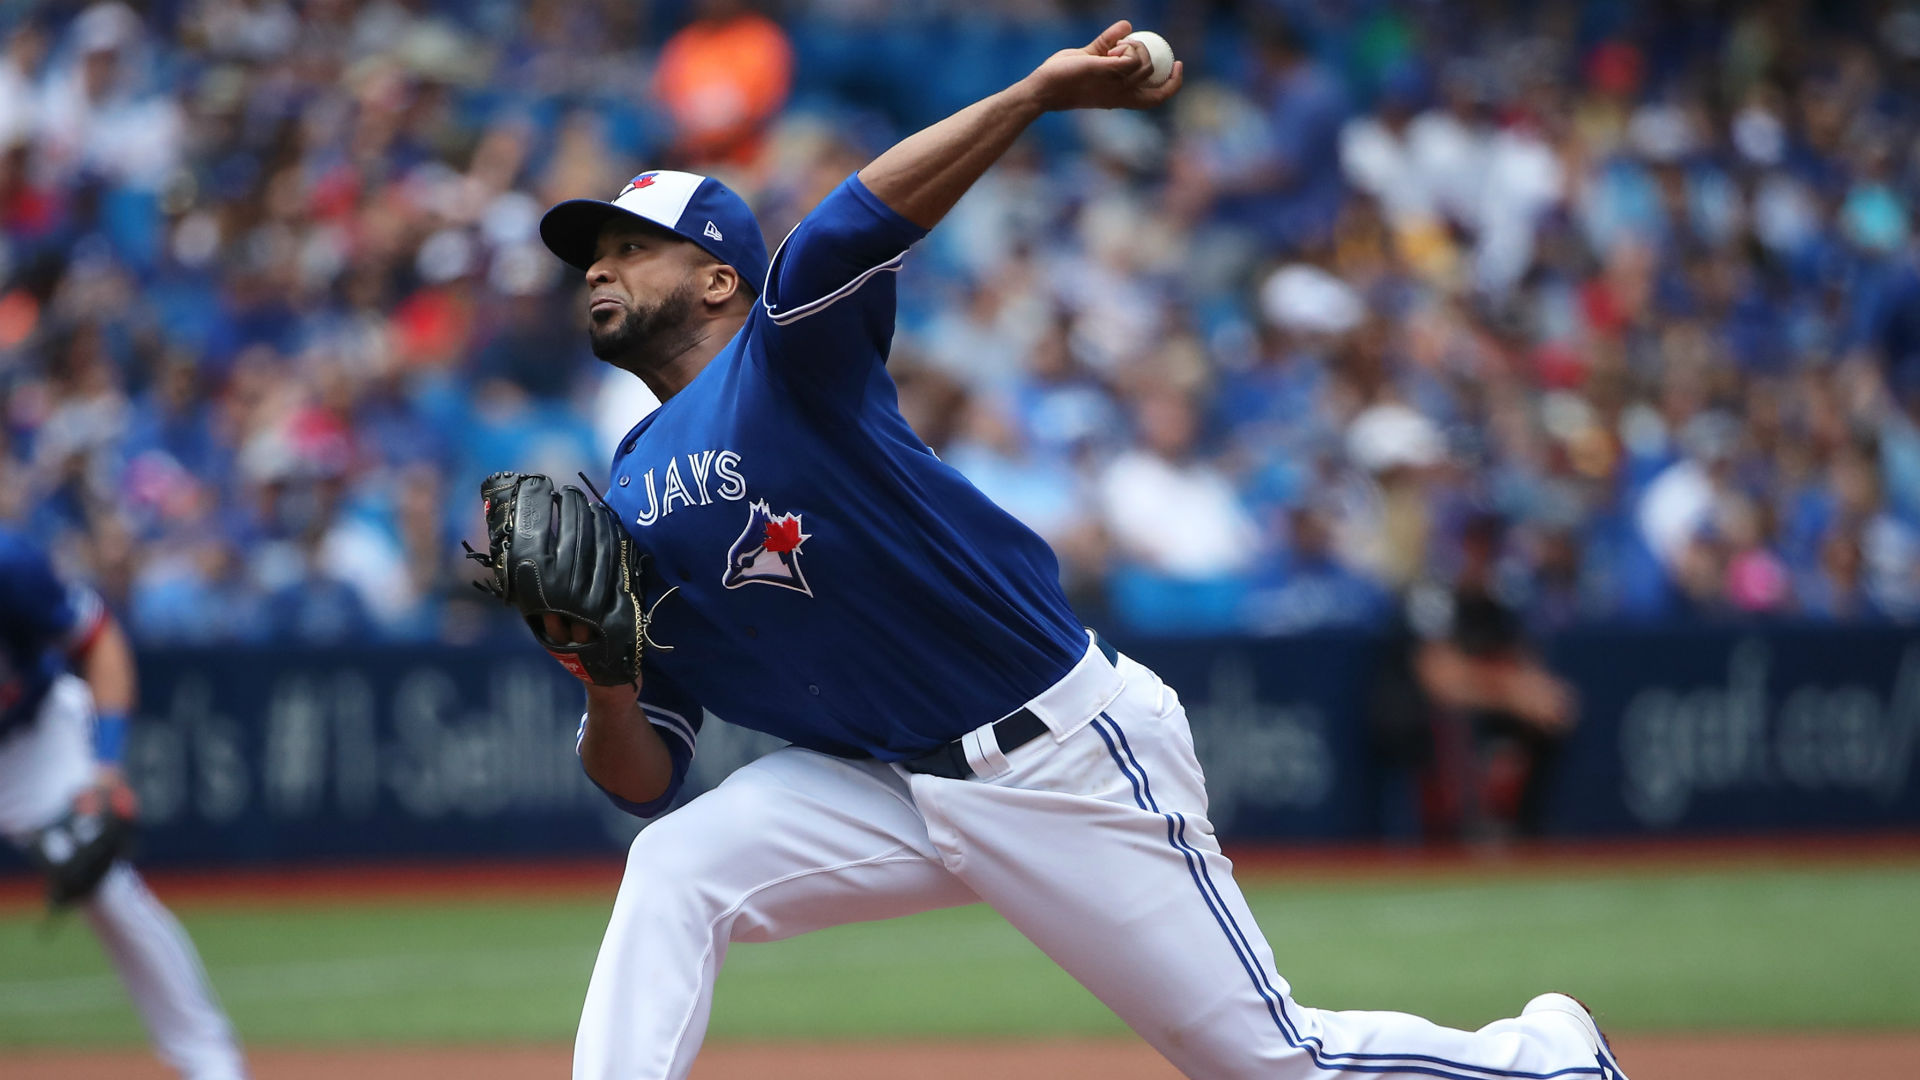 Astros Trade For LHP Francisco Liriano